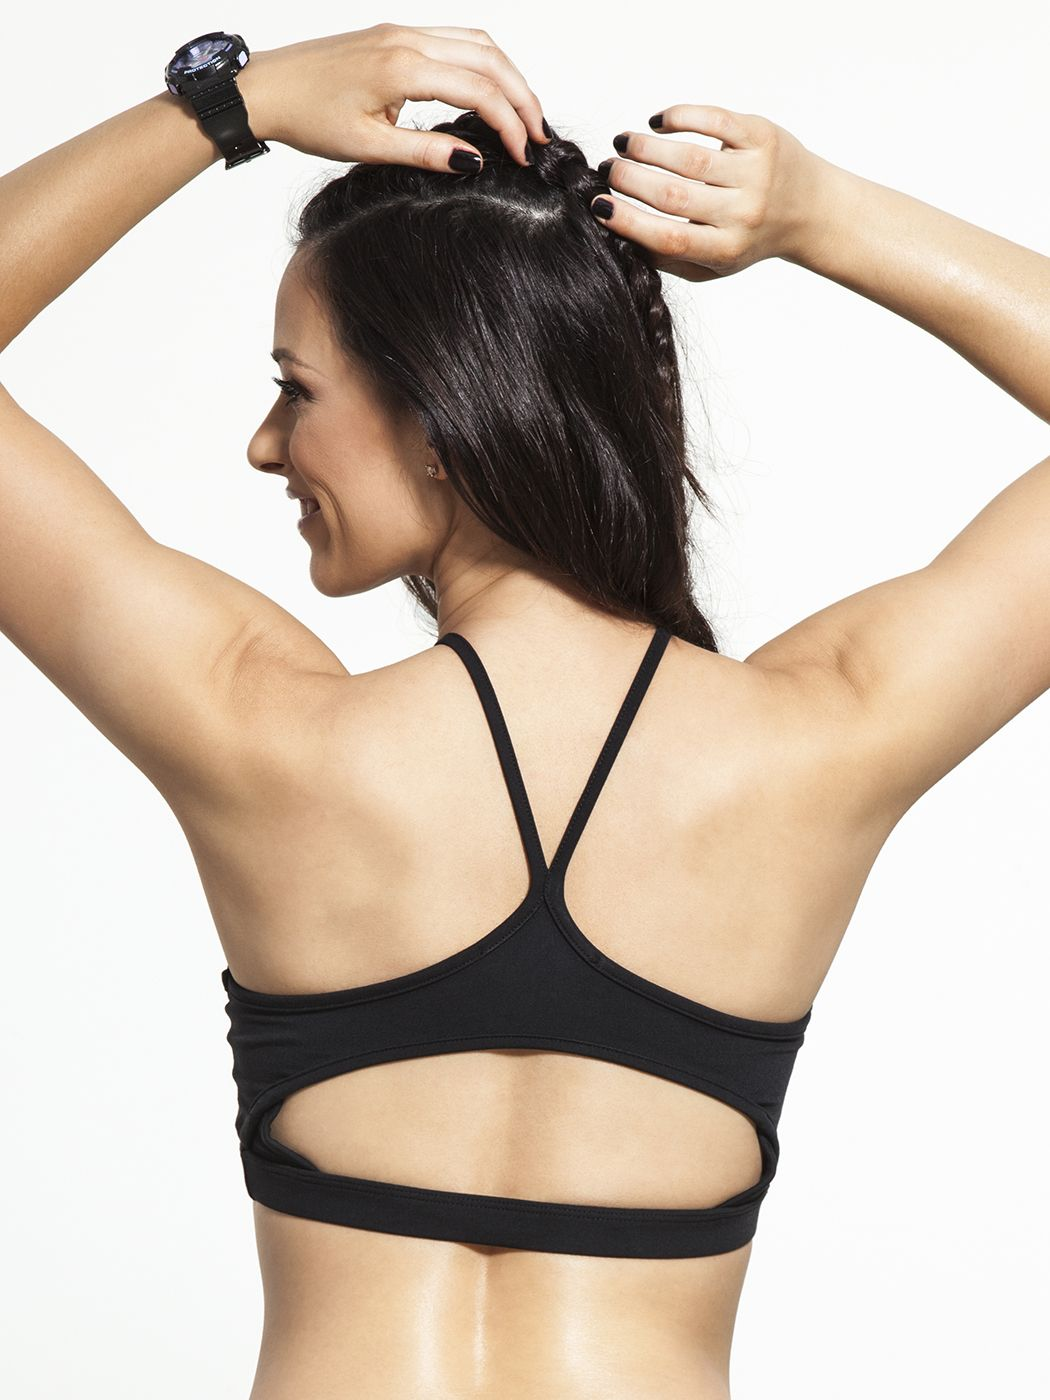 All the performance you need from a high-neck bra with your favorite Solow styling, the Lasercut Bra is equal parts sexy and supportive. The cami-style straps couple with an open back design and lasercut front to give you extra breathing room, making sure you feel cool and look cooler during your next workout.